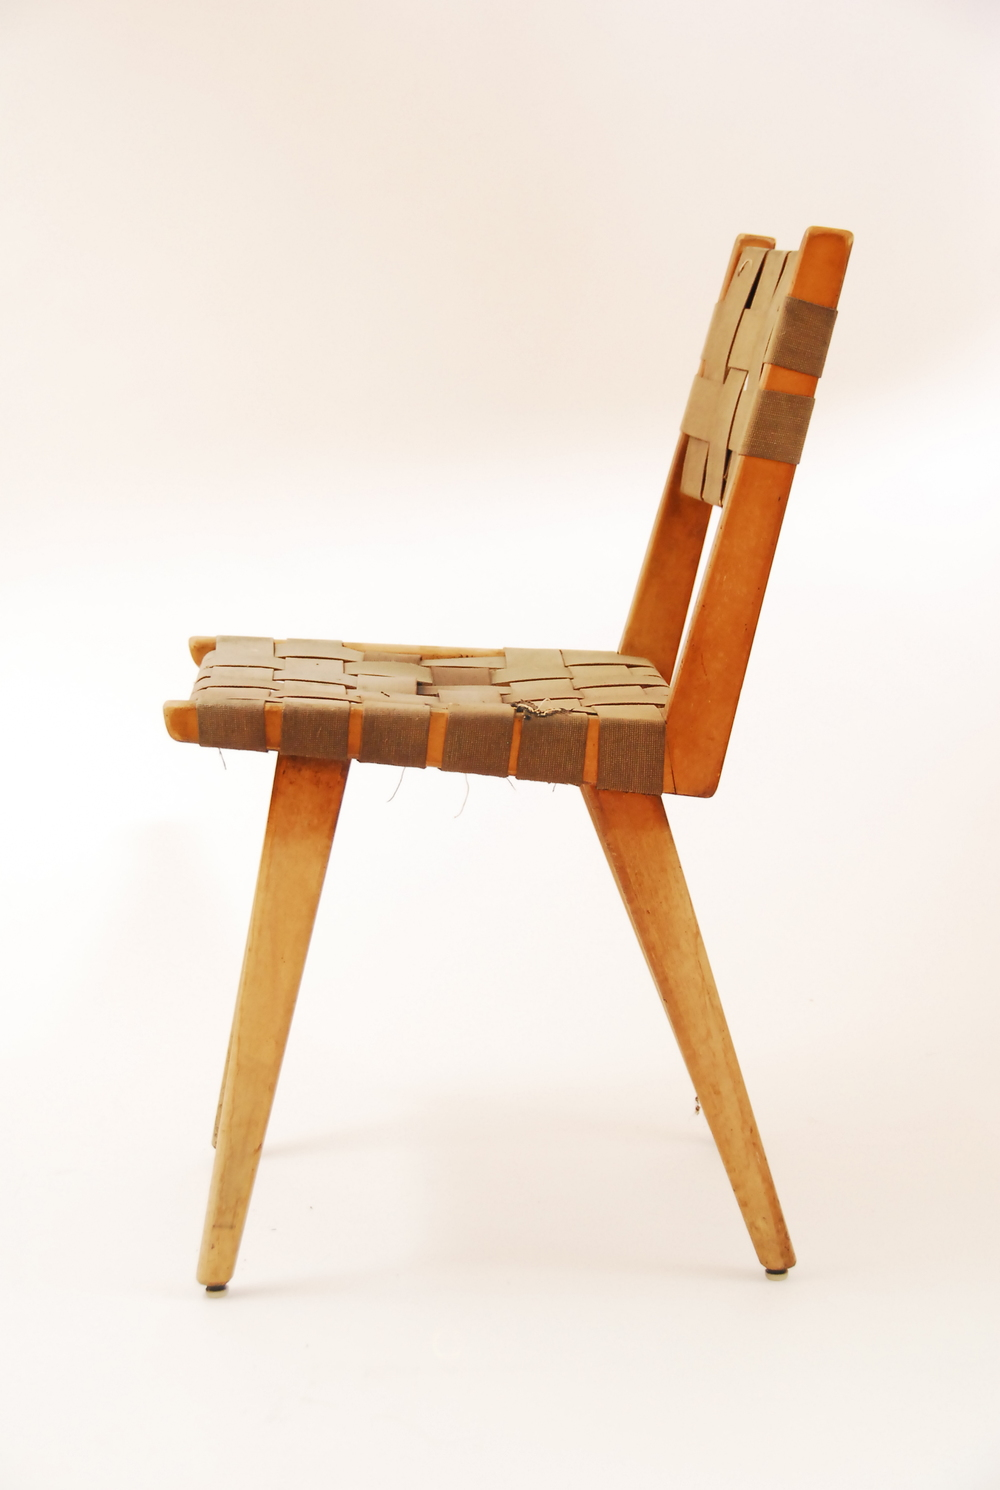 studio_nicco_chair__1340.JPG